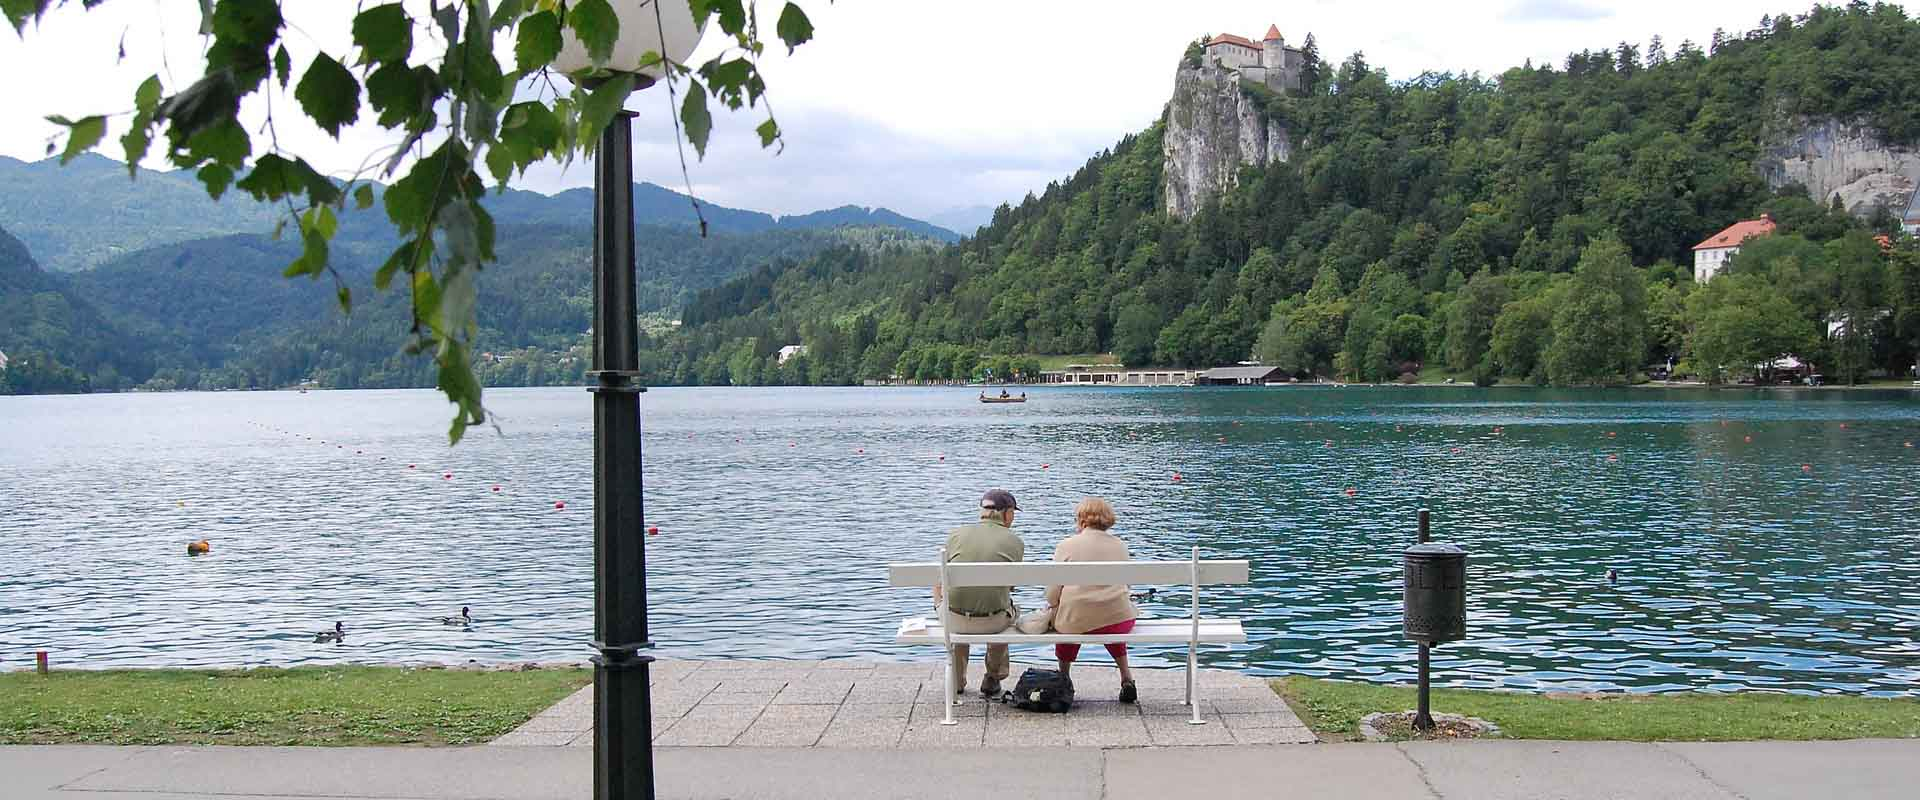 Couple on a bench overlooking a river with mountains